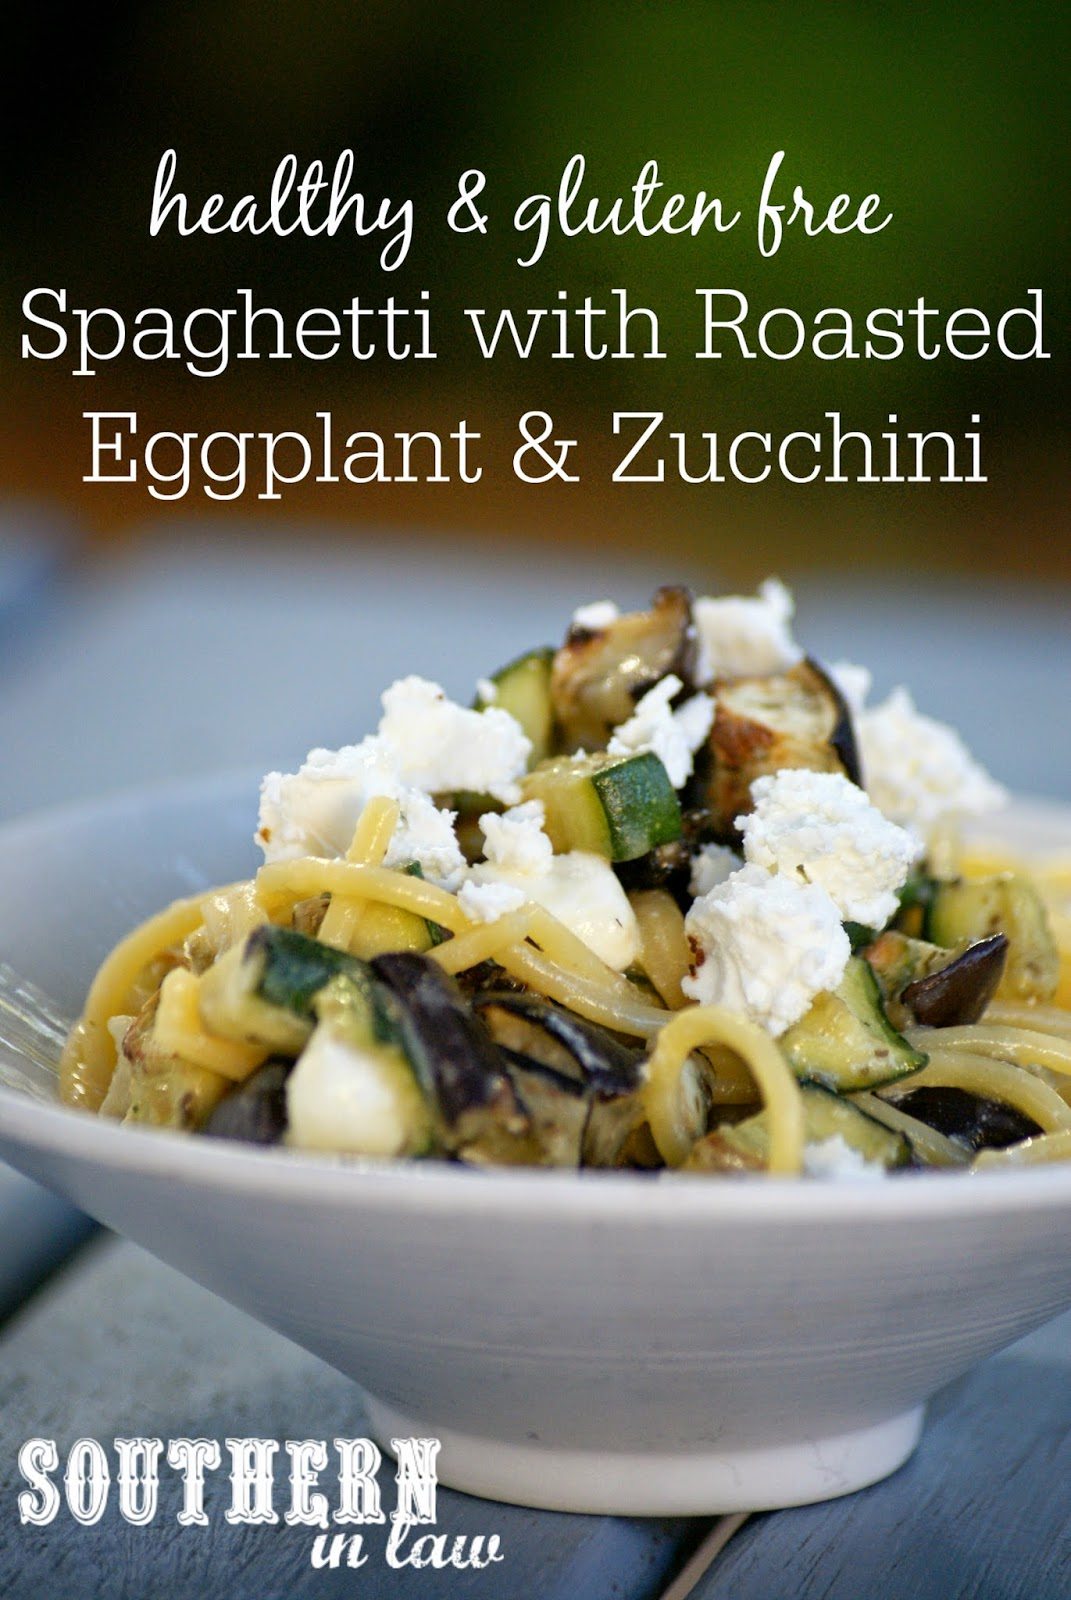 Healthy Spaghetti with Roasted Eggplant, Zucchini and Feta - low fat, gluten free, healthy, clean eating friendly, vegetarian